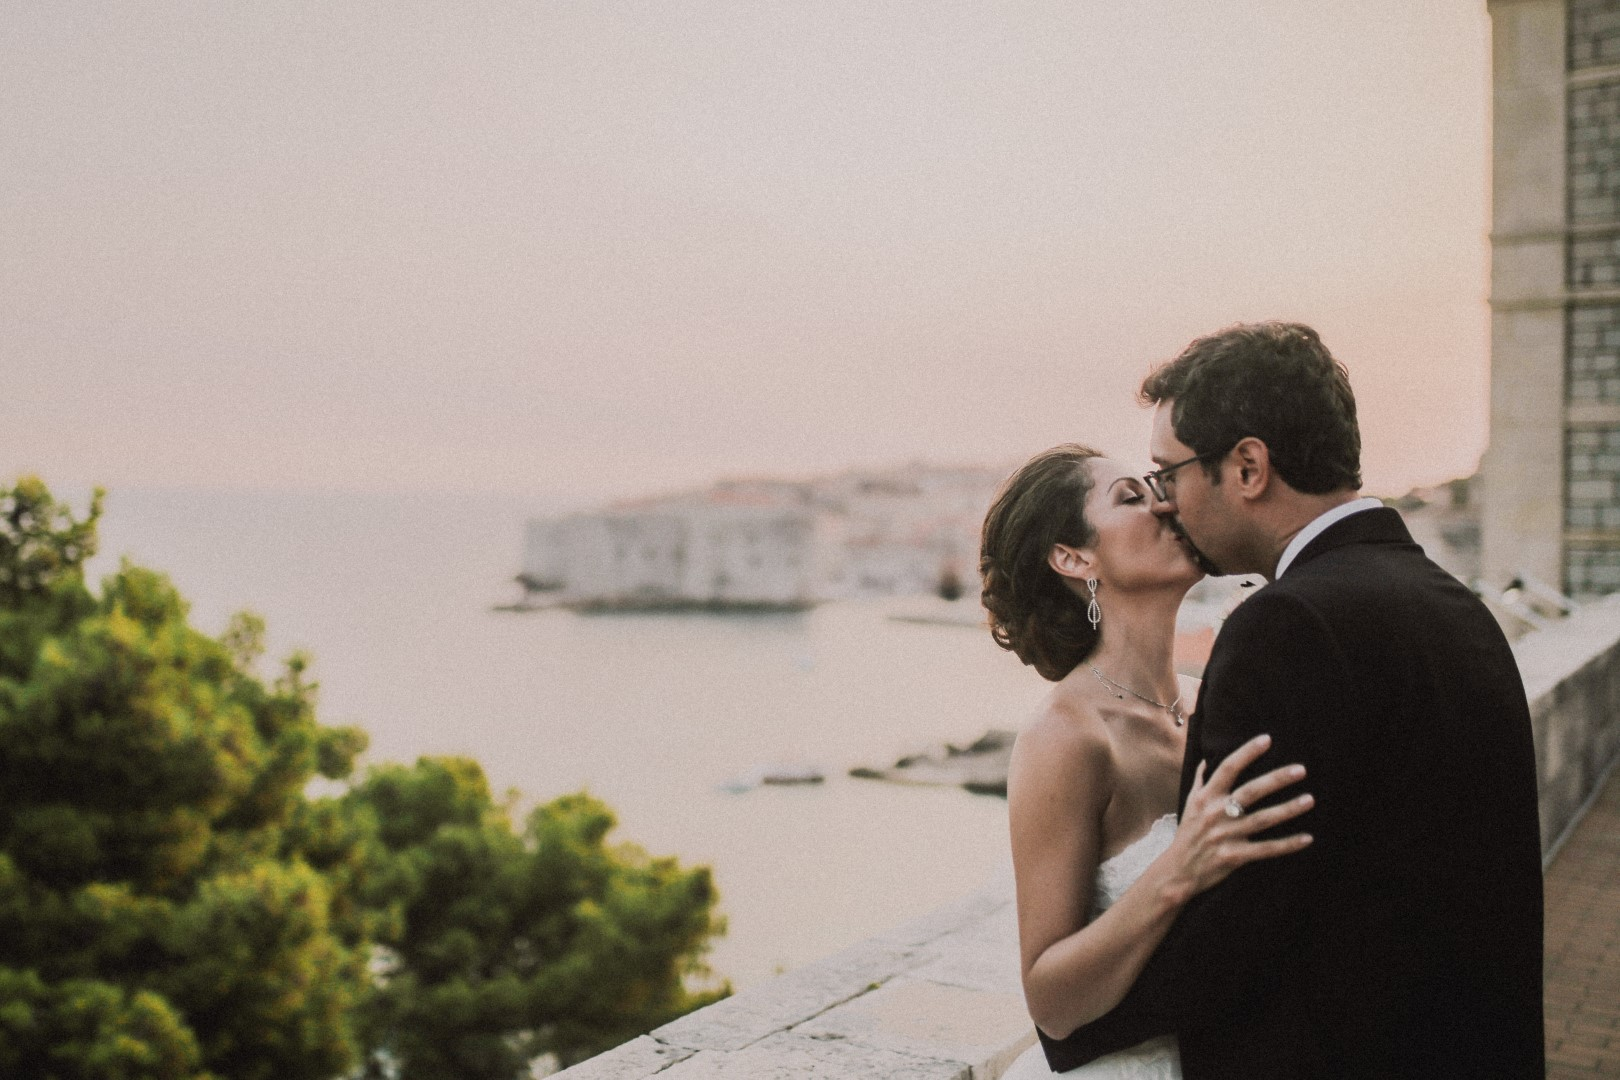 This is a photo of the happy couple kissing. In the background is the stunning view of Dubrovnik old town and the sea. She has an updo and he's wearing a classic black tux.